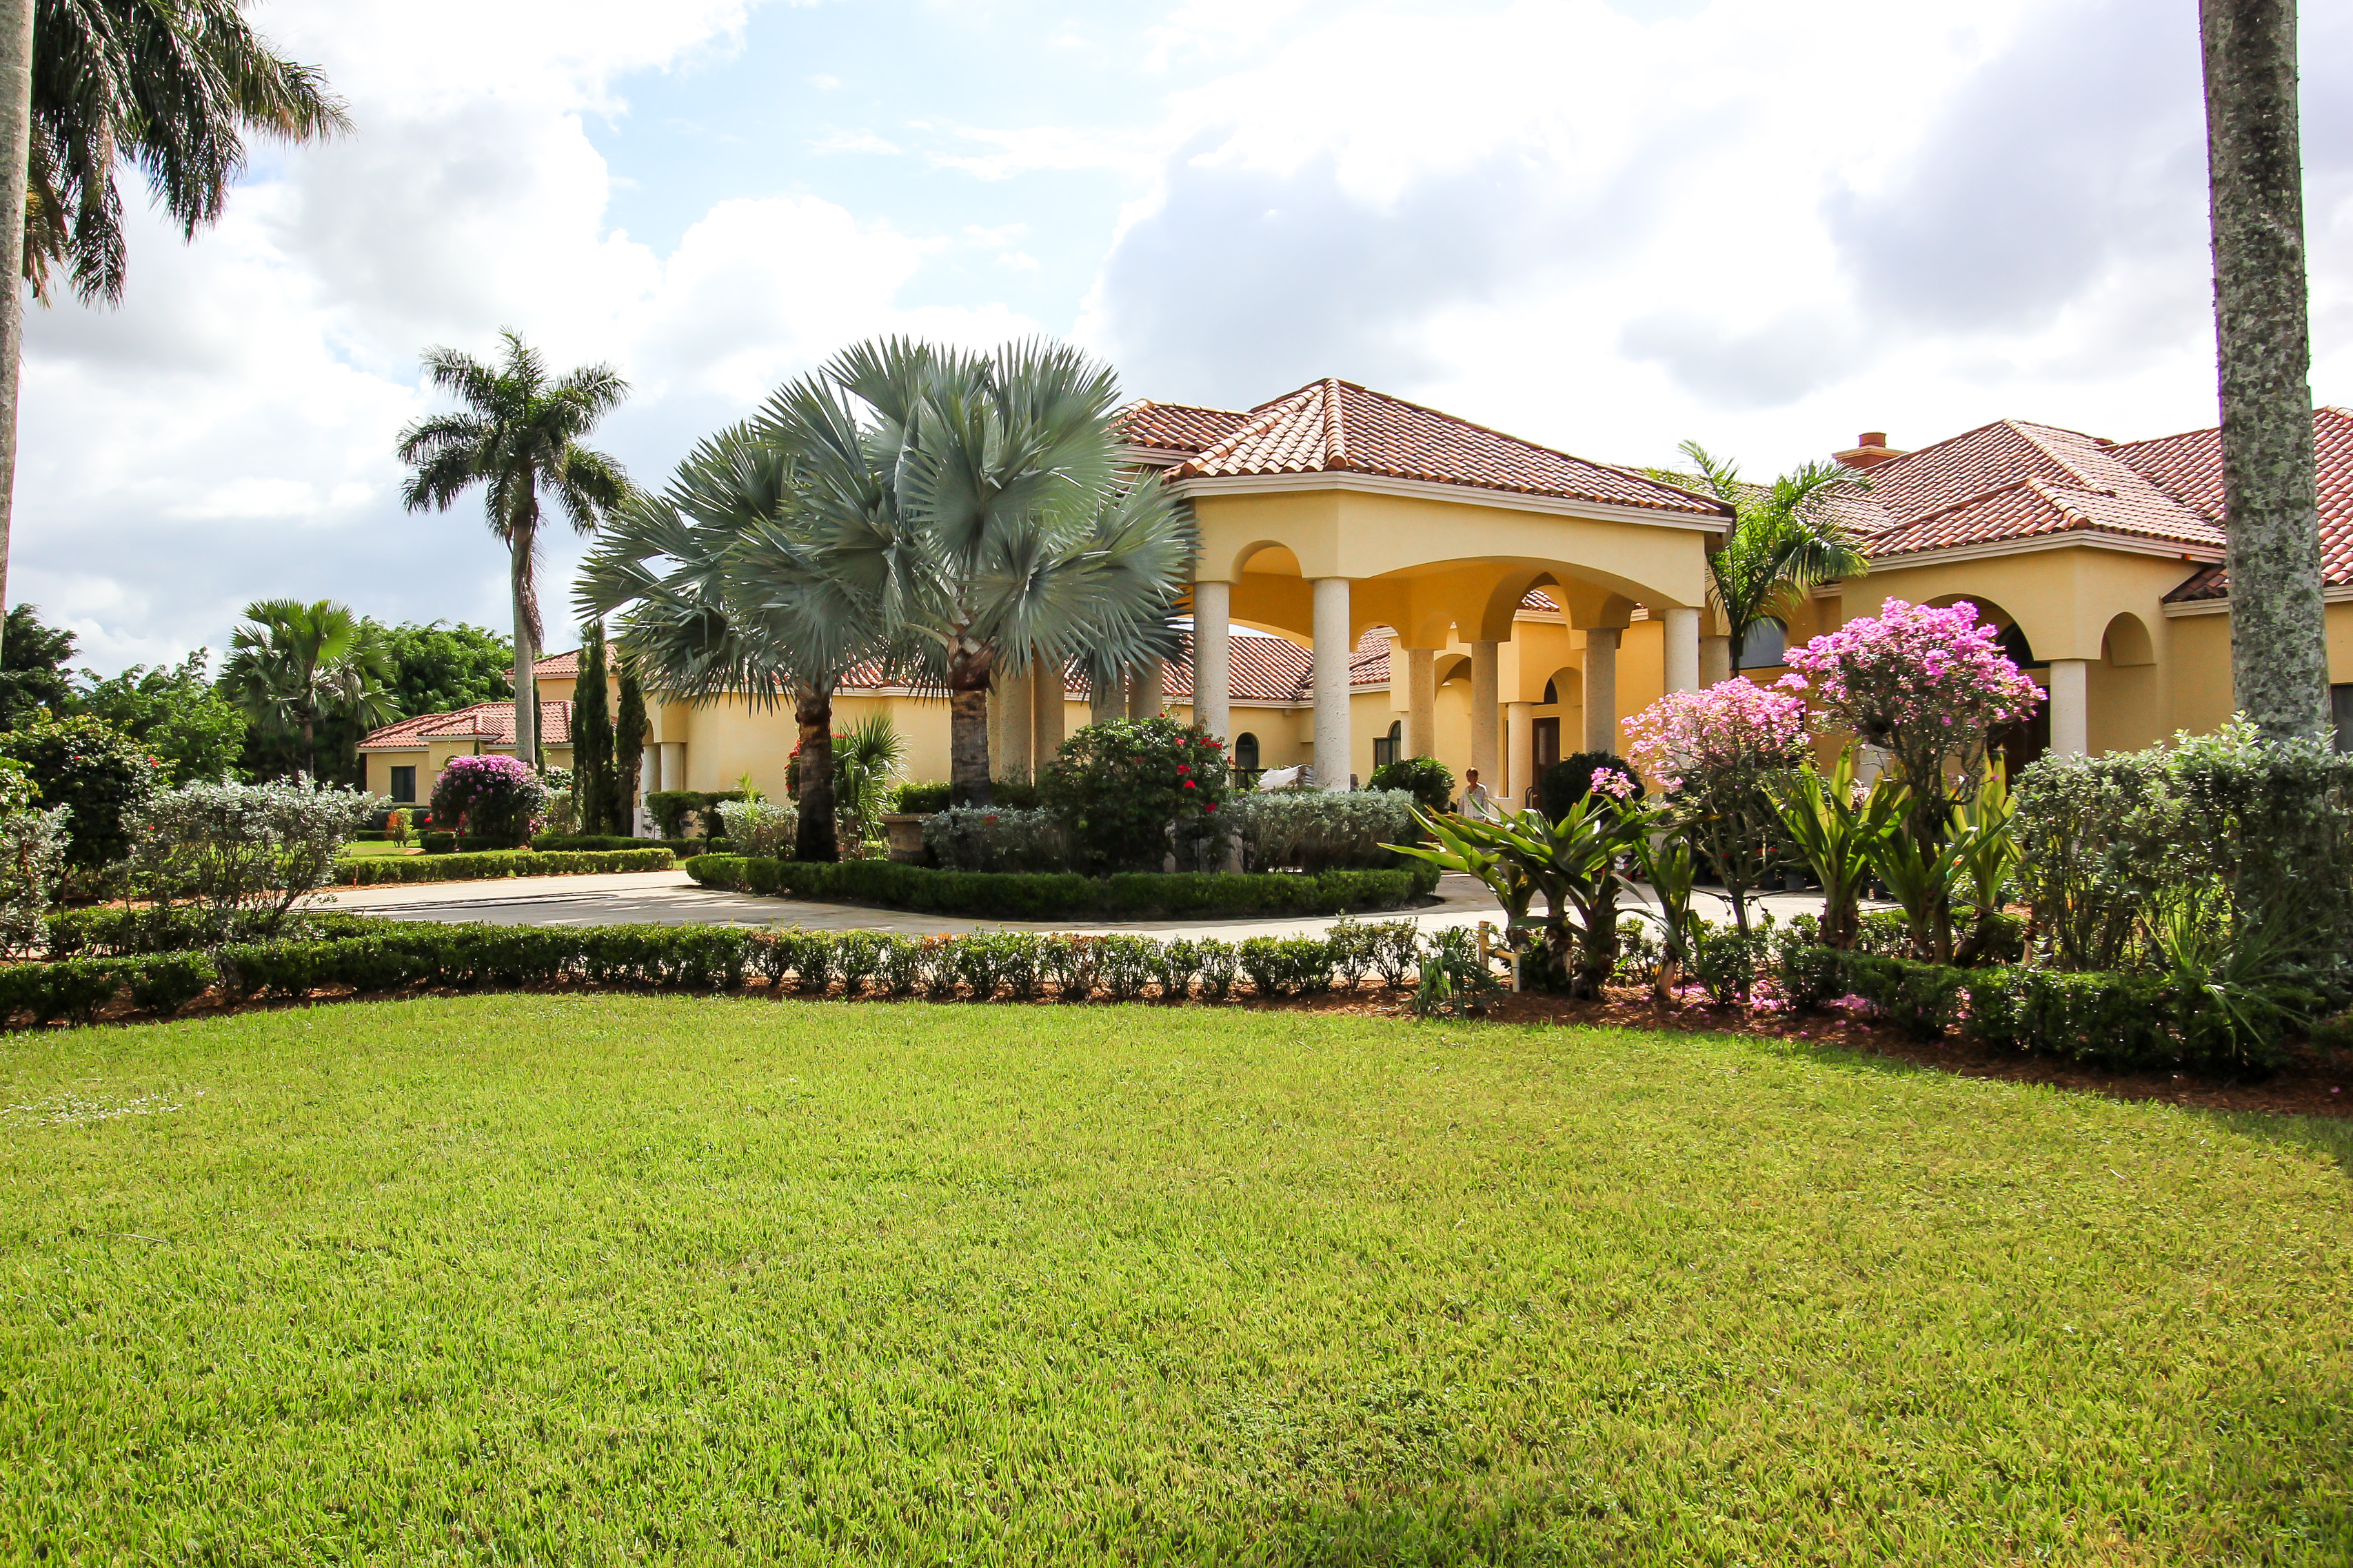 Casa Unifamiliar por un Venta en 15300 Golden Point Lane Palm Beach Point, Wellington, Florida 33414 Estados Unidos